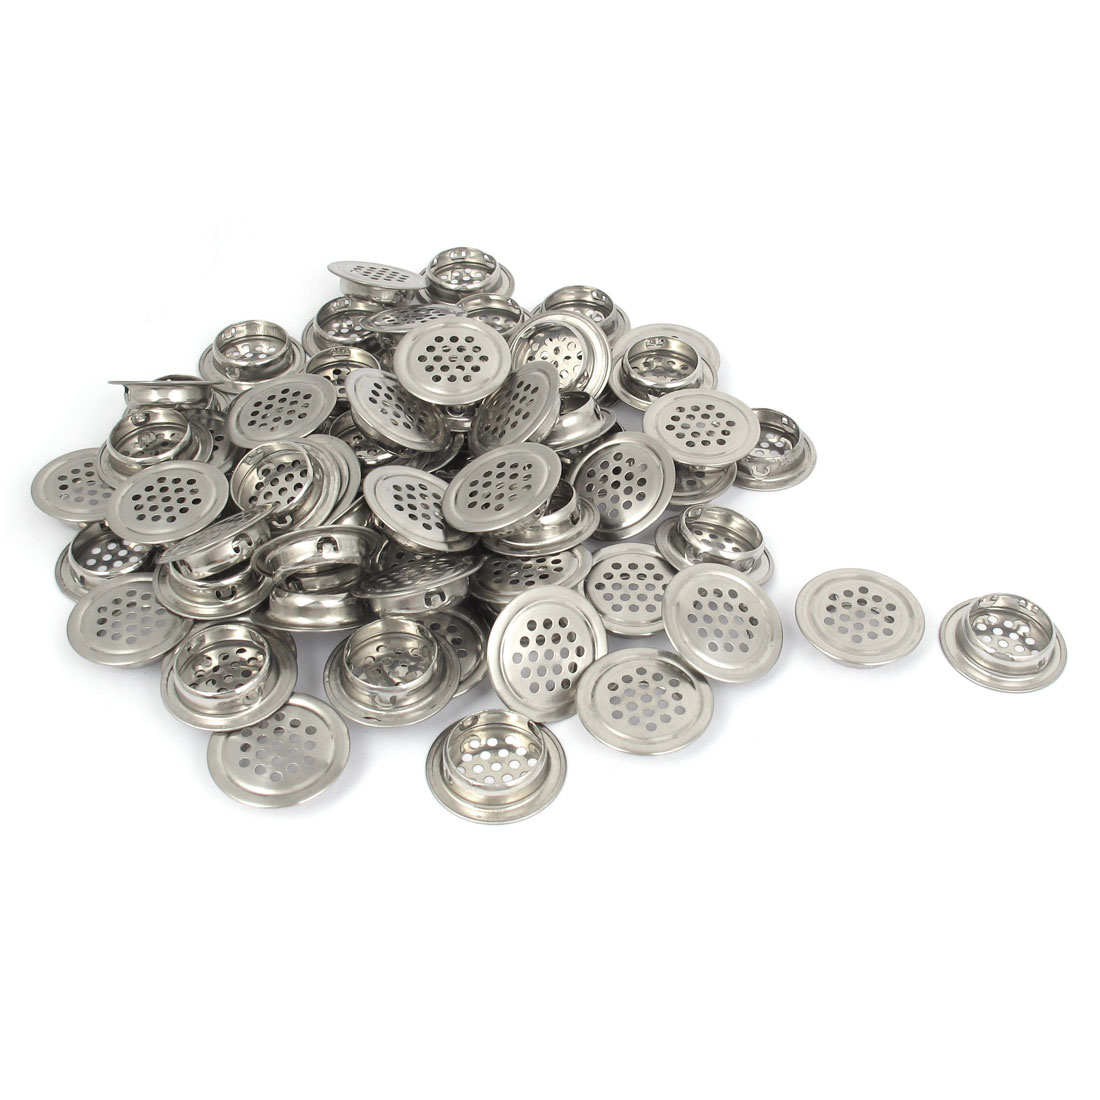 38mm Diameter Flat Stainless Steel Cabinet Mesh Hole Air Vent Louver 100pcs